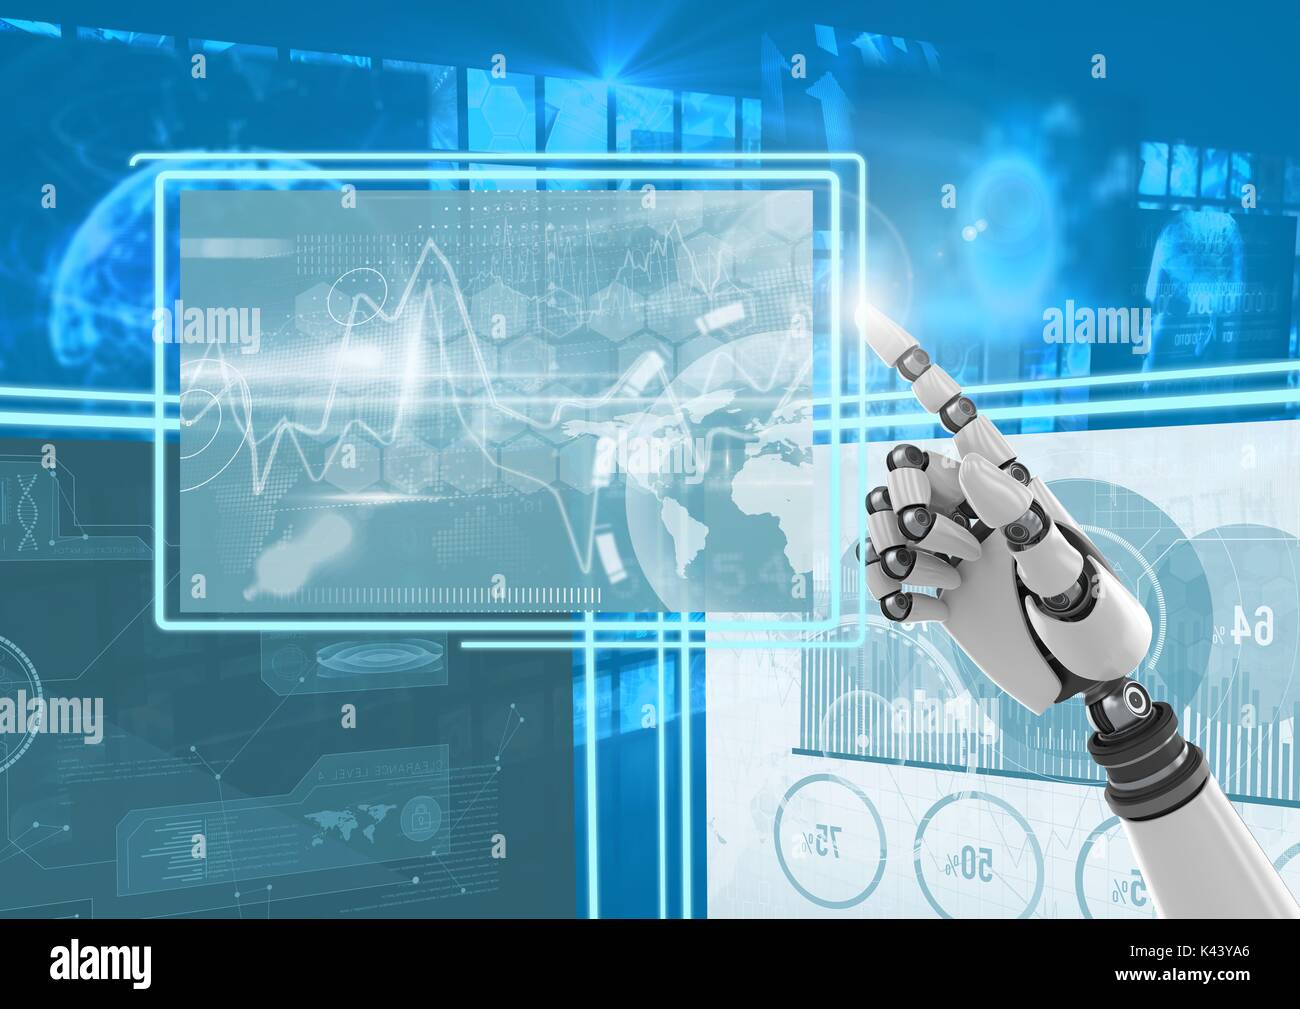 Digital composite of Robot hand interacting with technology